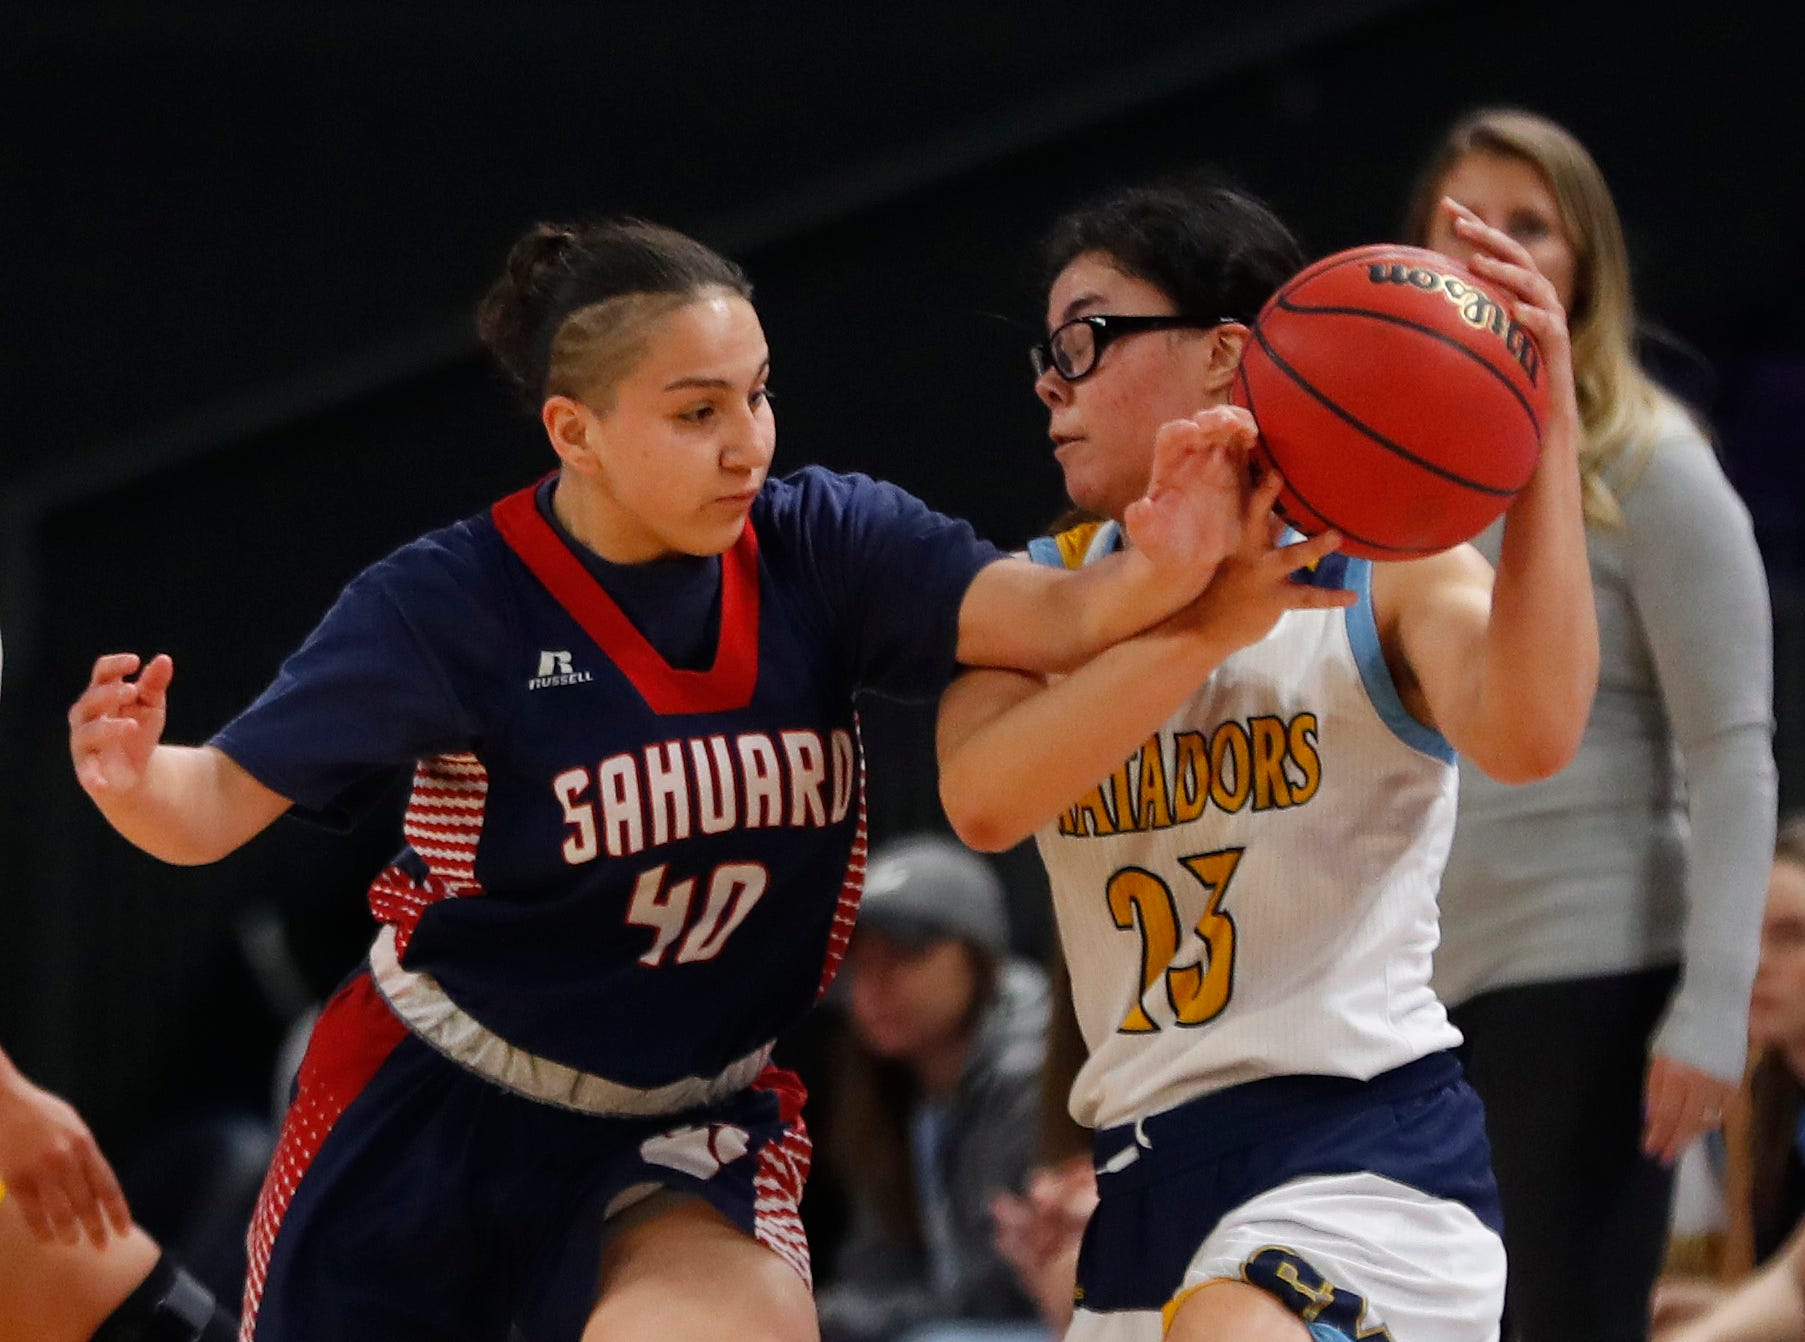 Sahuaro's Milaya Leon (40) knocks loose a ball from Shadow Mountain's Sissy Paloma (23) during second half of the 4A girls basketball semifinal game at Grand Canyon University Arena in Phoenix, Ariz. on February 22, 2019.